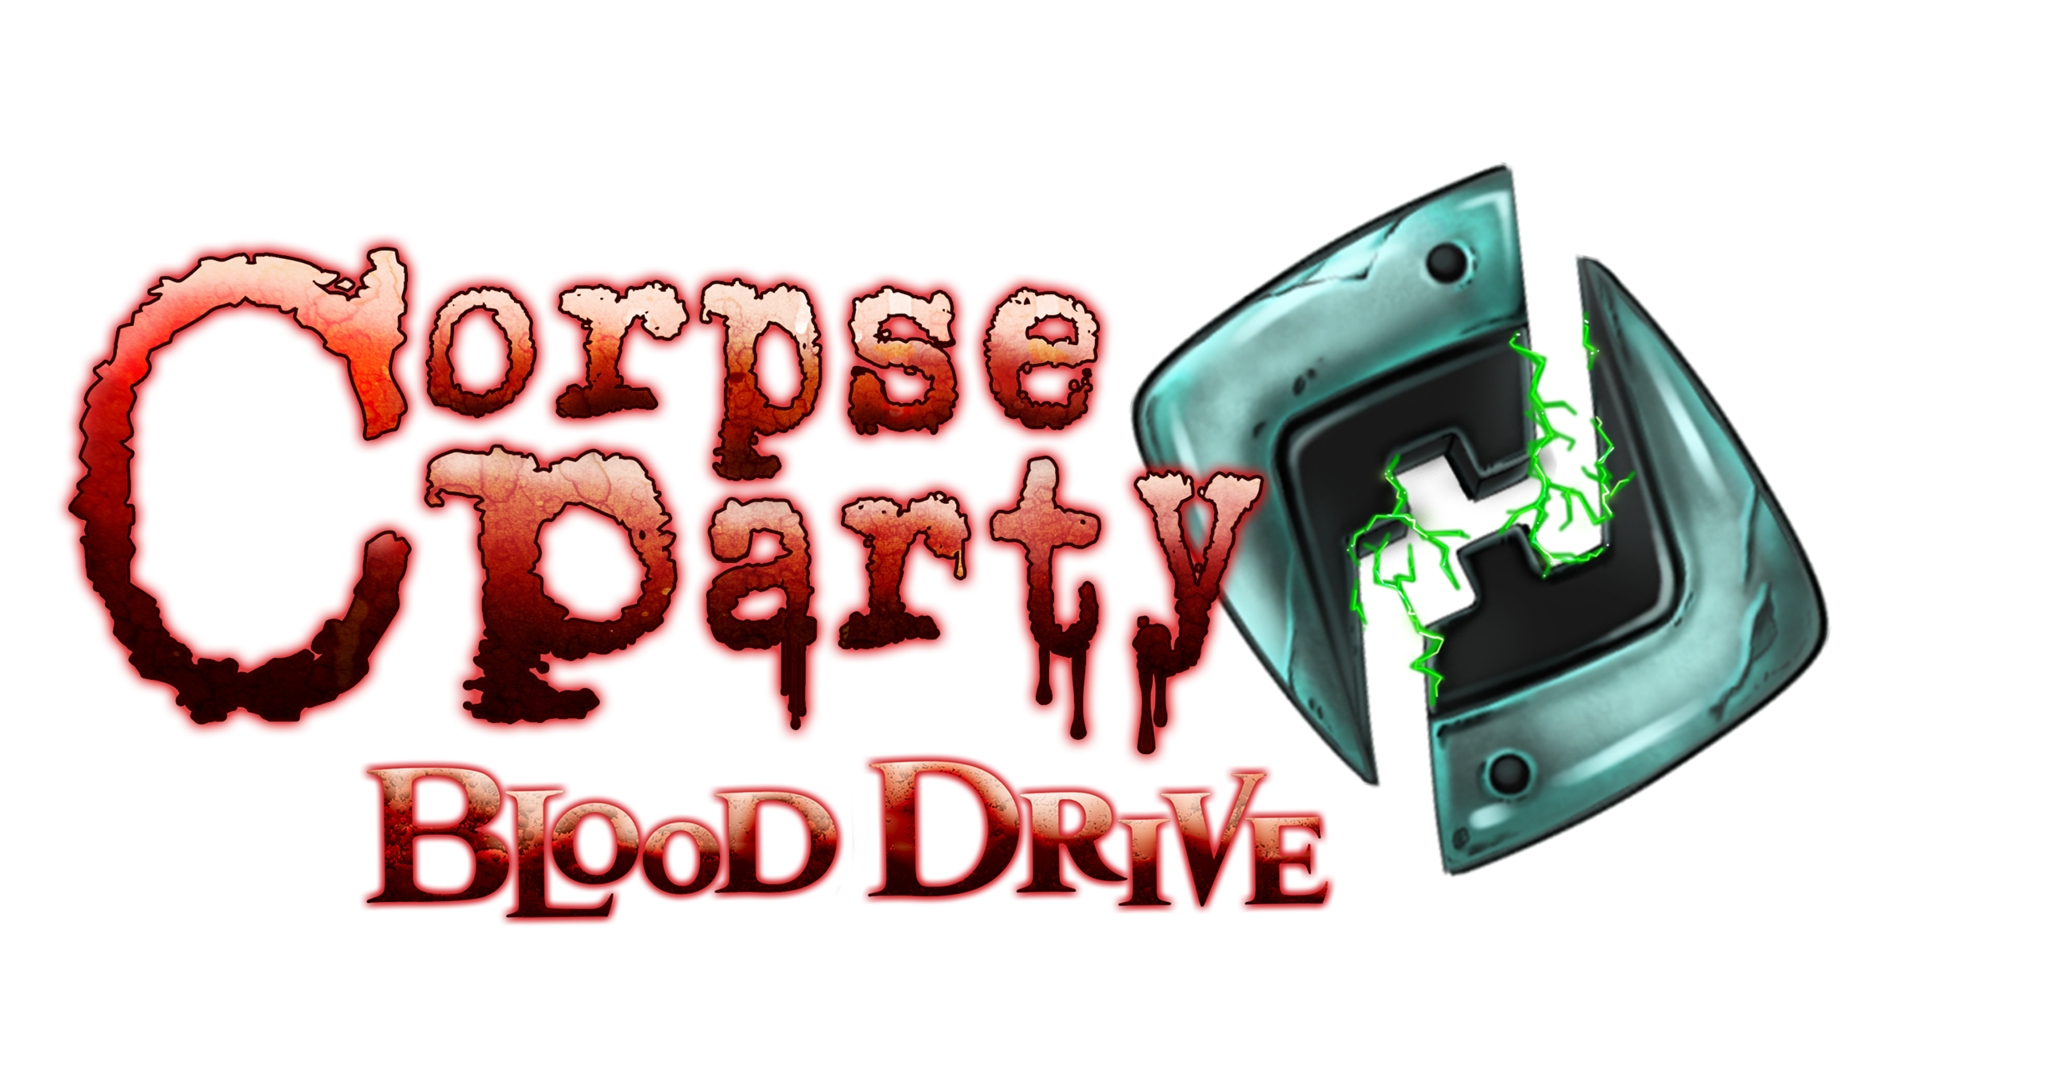 Corpse Party: Blood Drive Release Date Announced